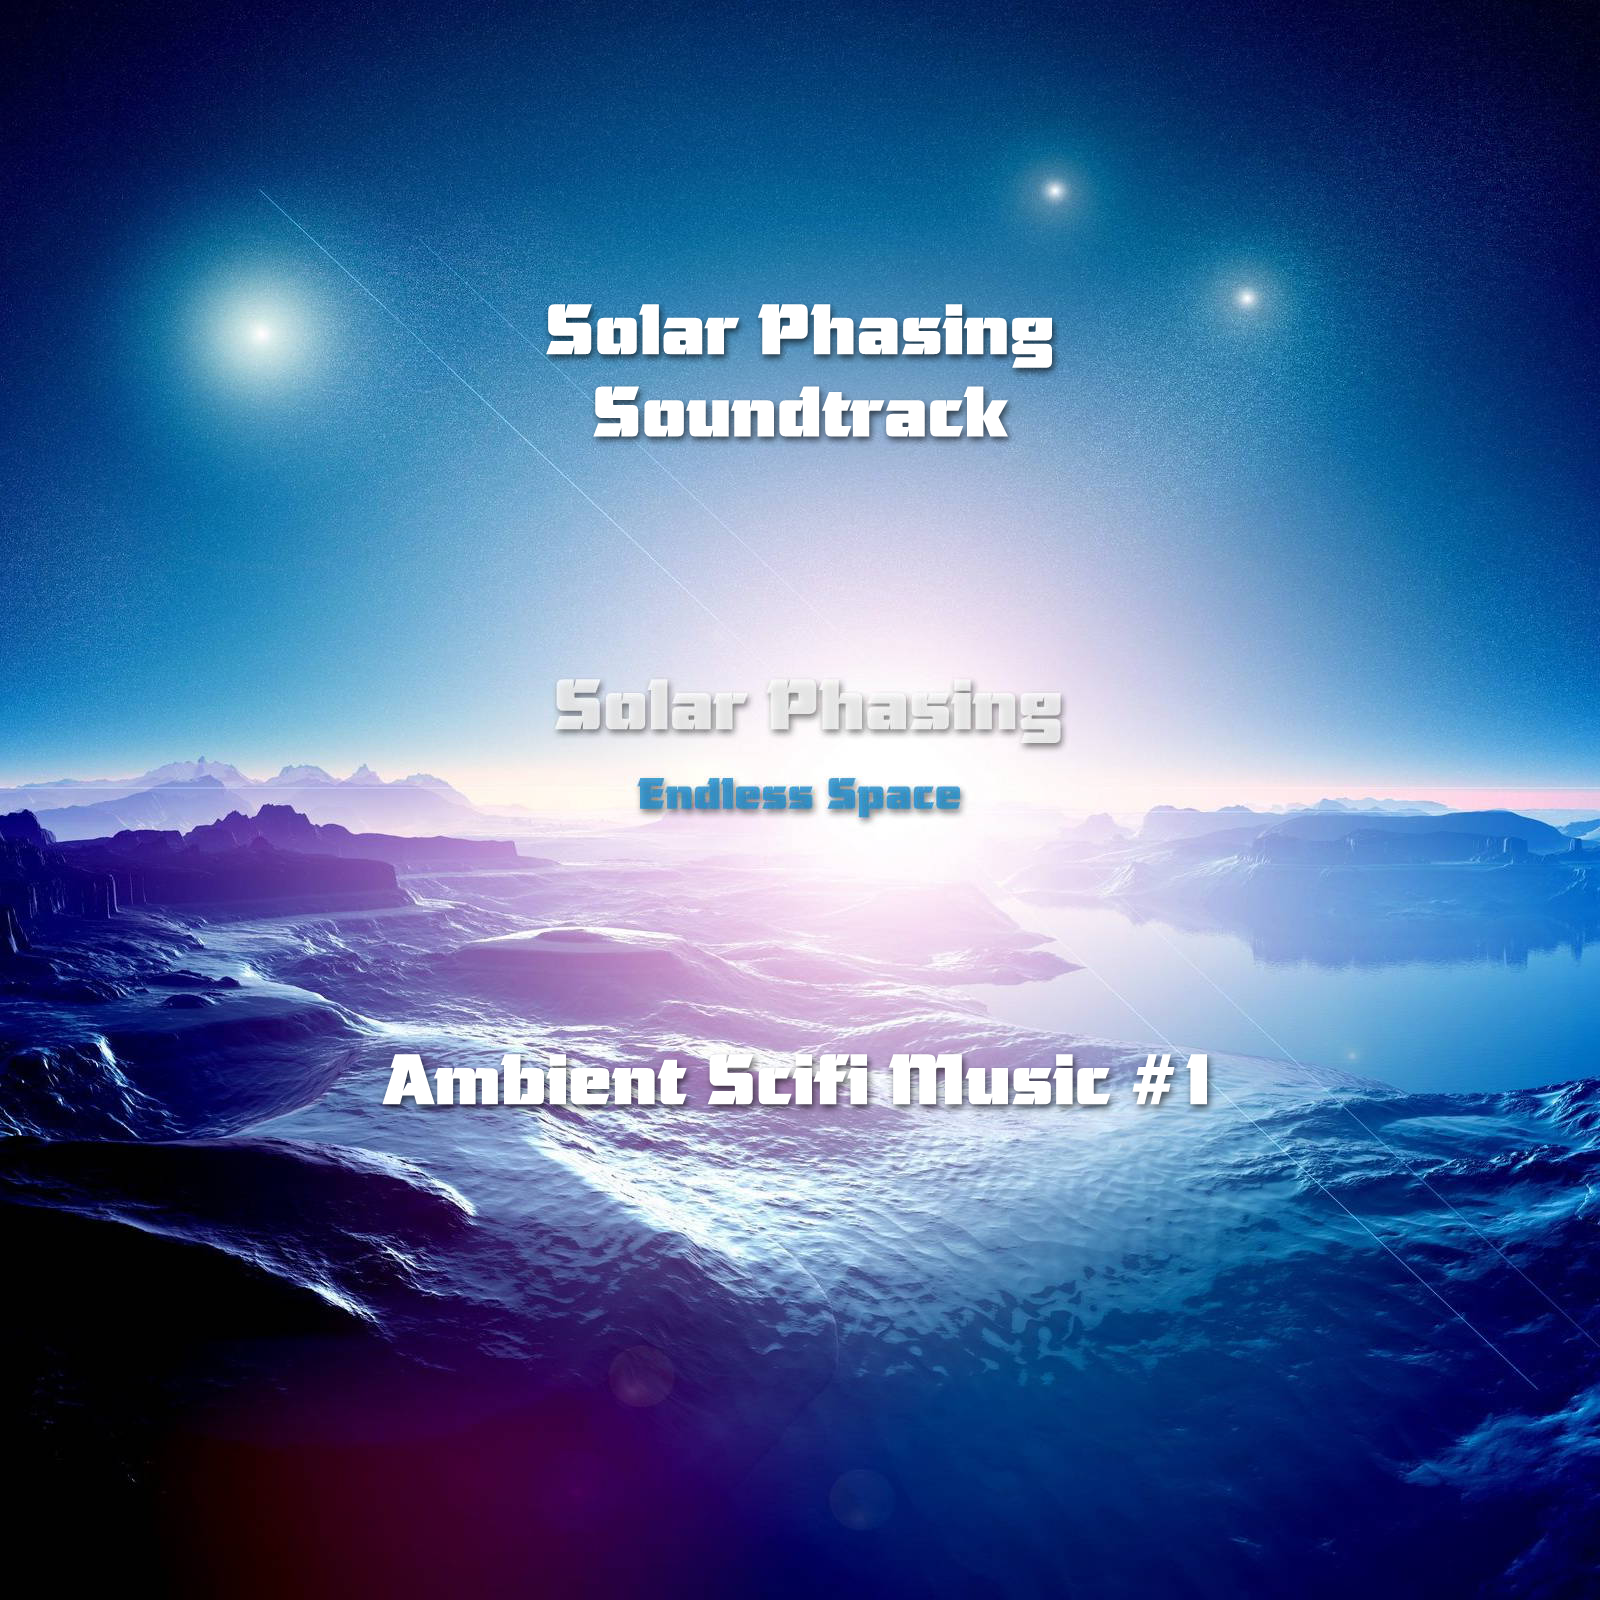 Ambient Scifi Music #1 - Endless Space by Solar Phasing